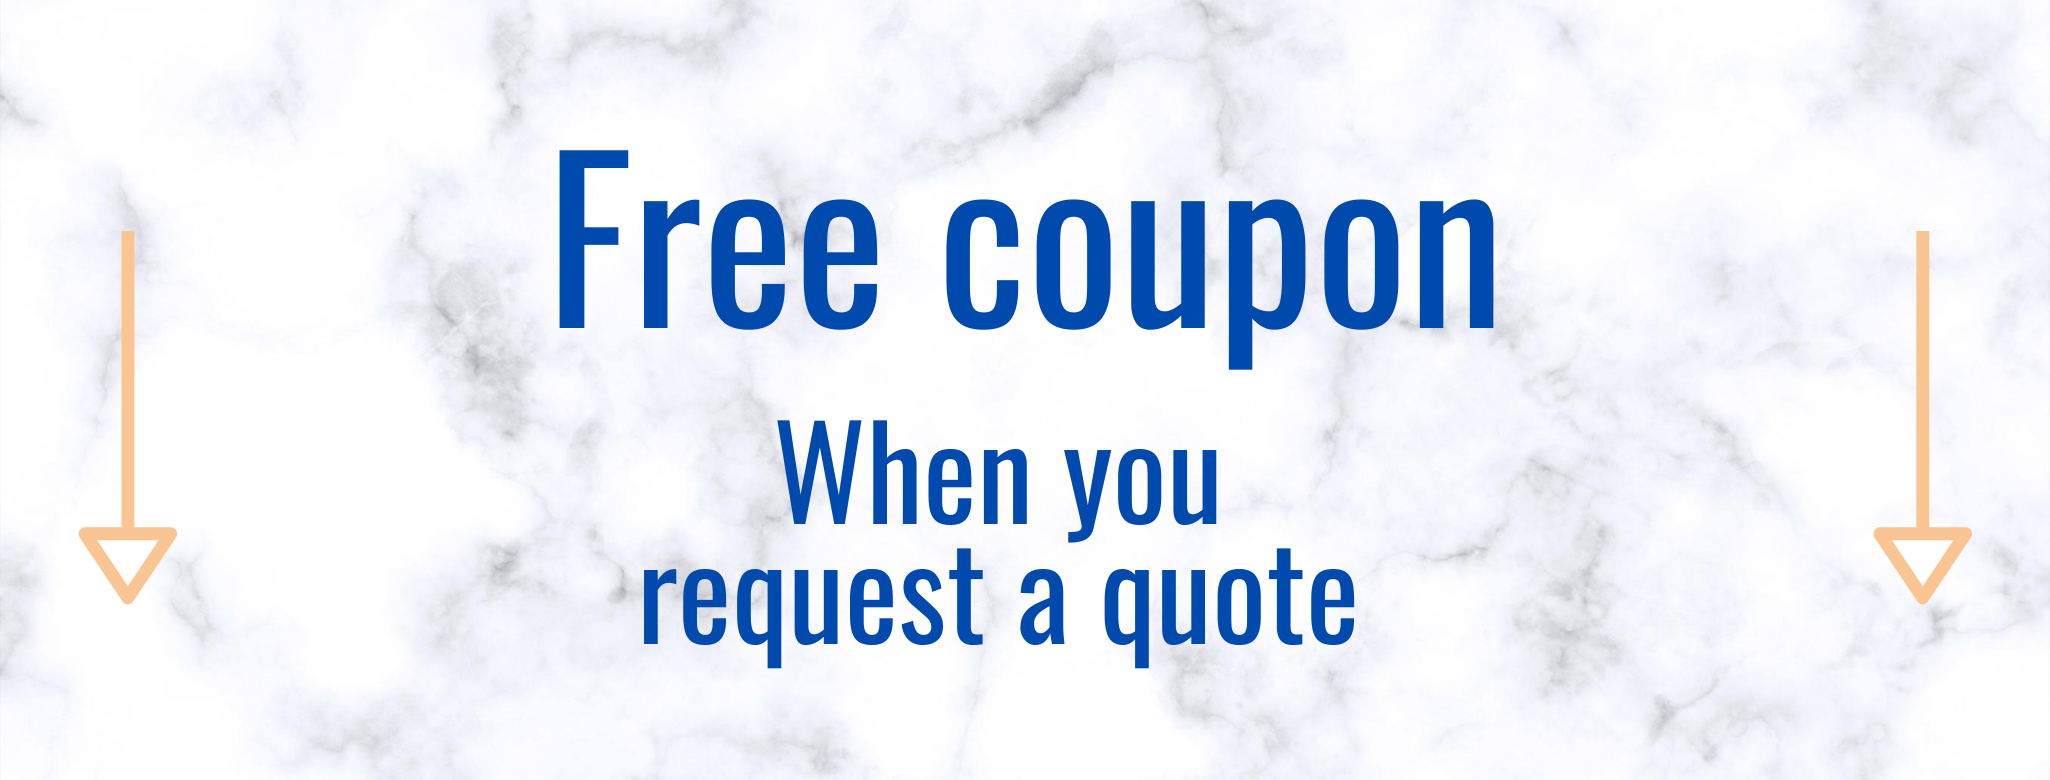 """A banner with the text """"free coupon when you request a quote"""" over a white granite background"""